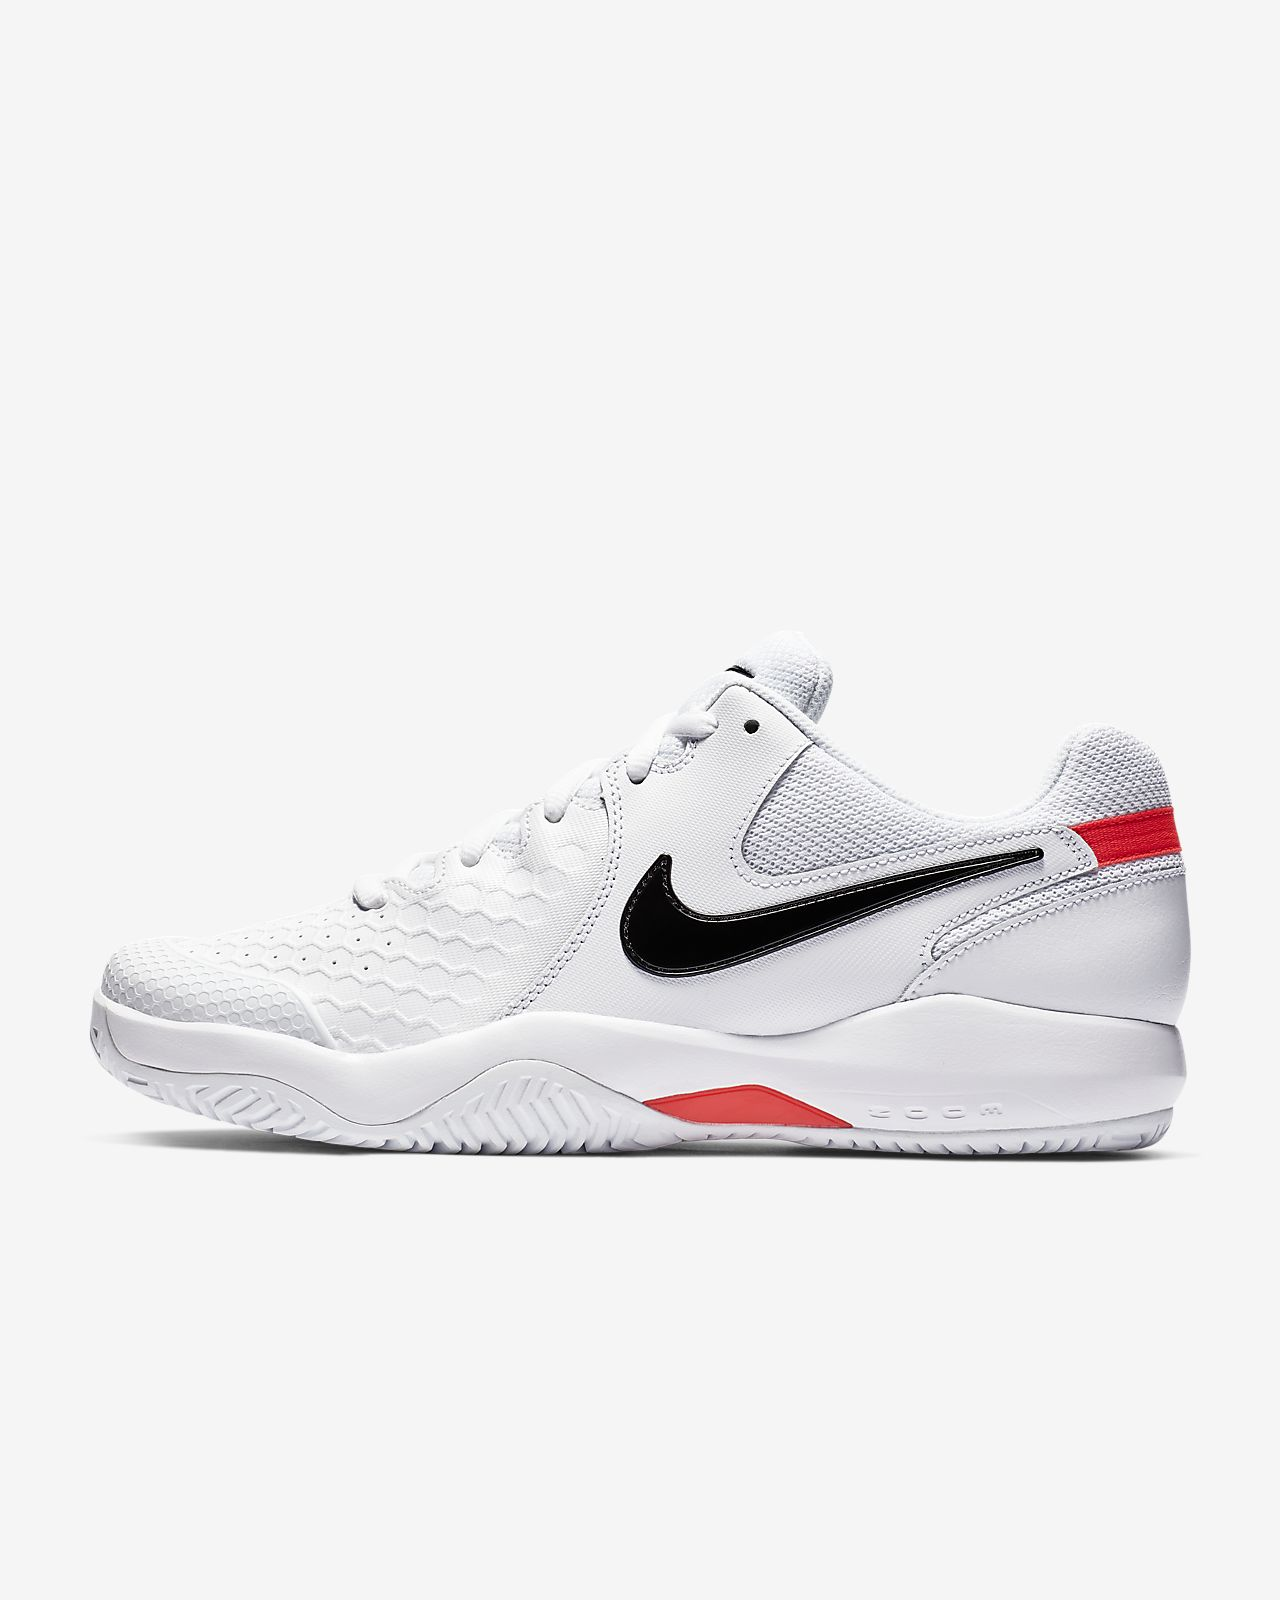 NikeCourt Air Zoom Resistance Hardcourt tennisschoen voor heren